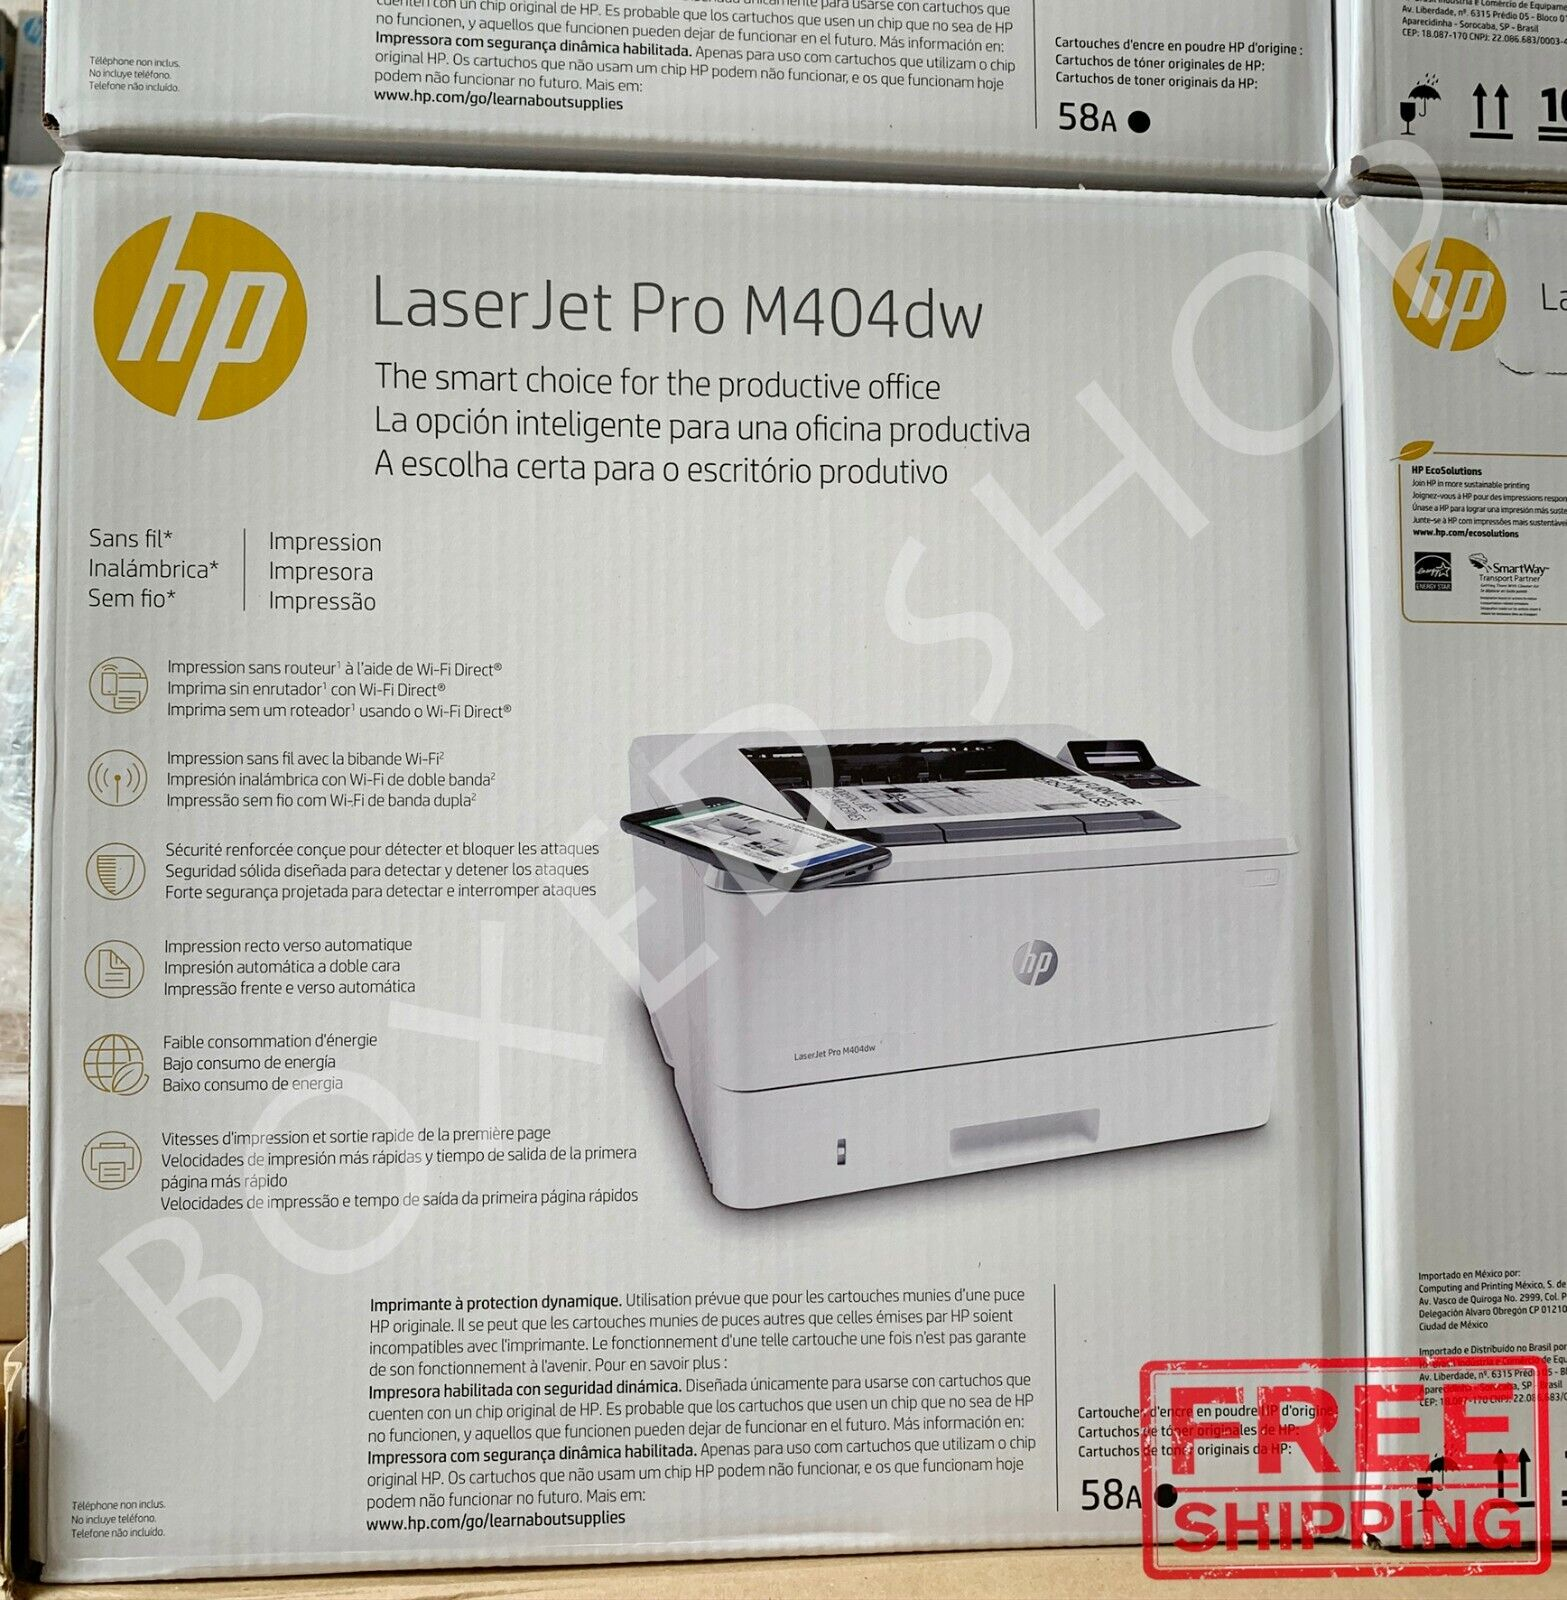 BRAND NEW HP LaserJet Pro M404dw Printer